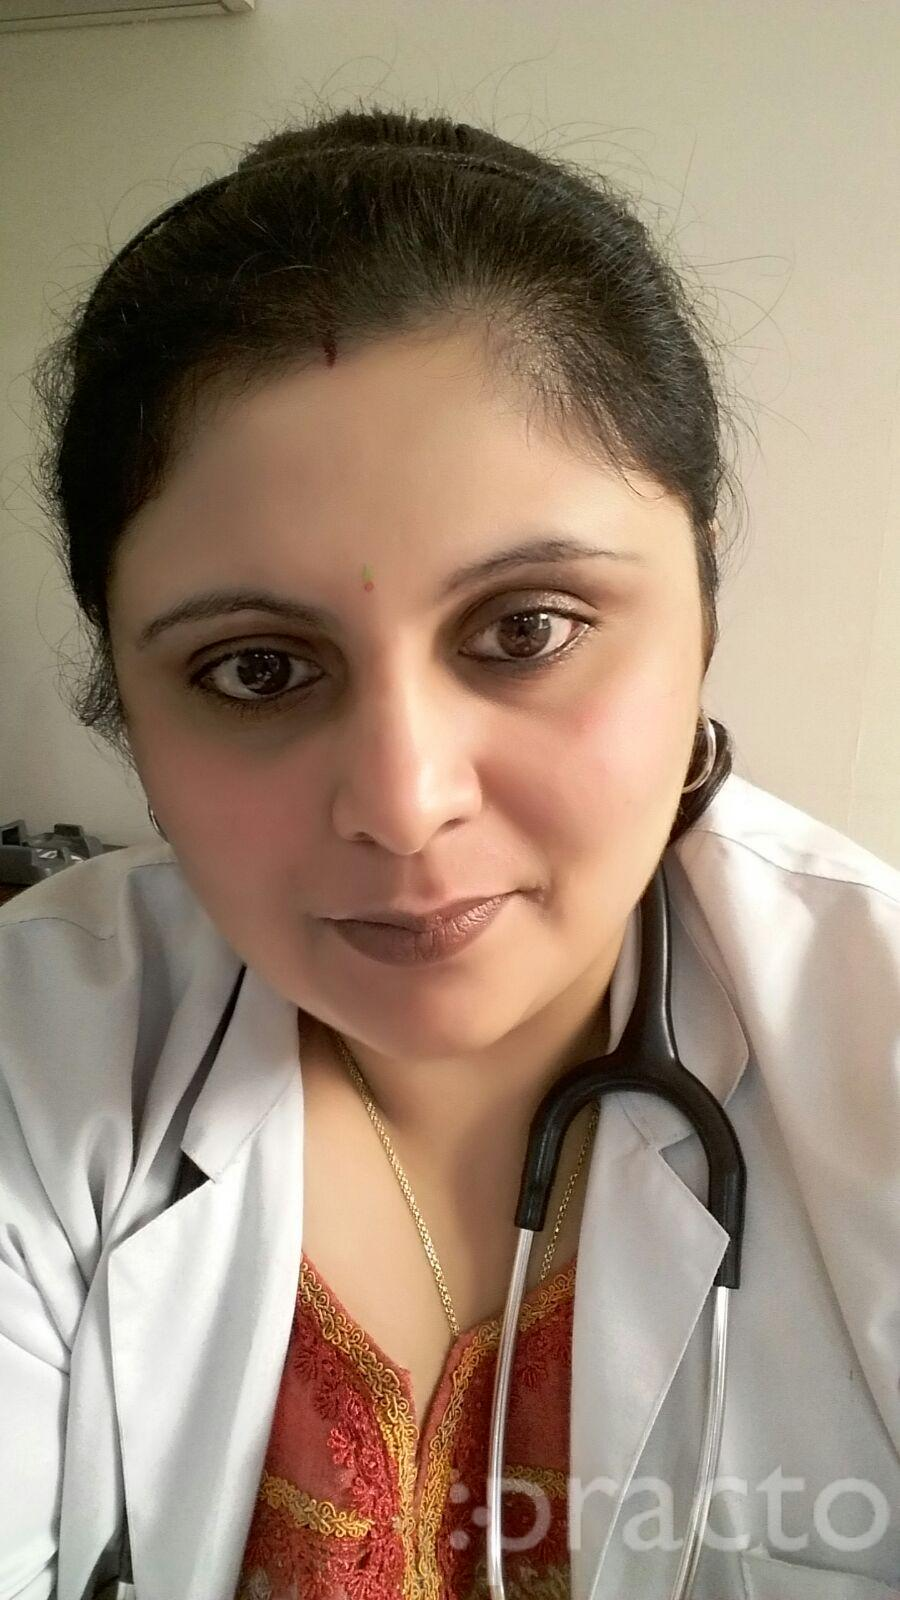 Dr. Sukriti Bhalla - General Physician